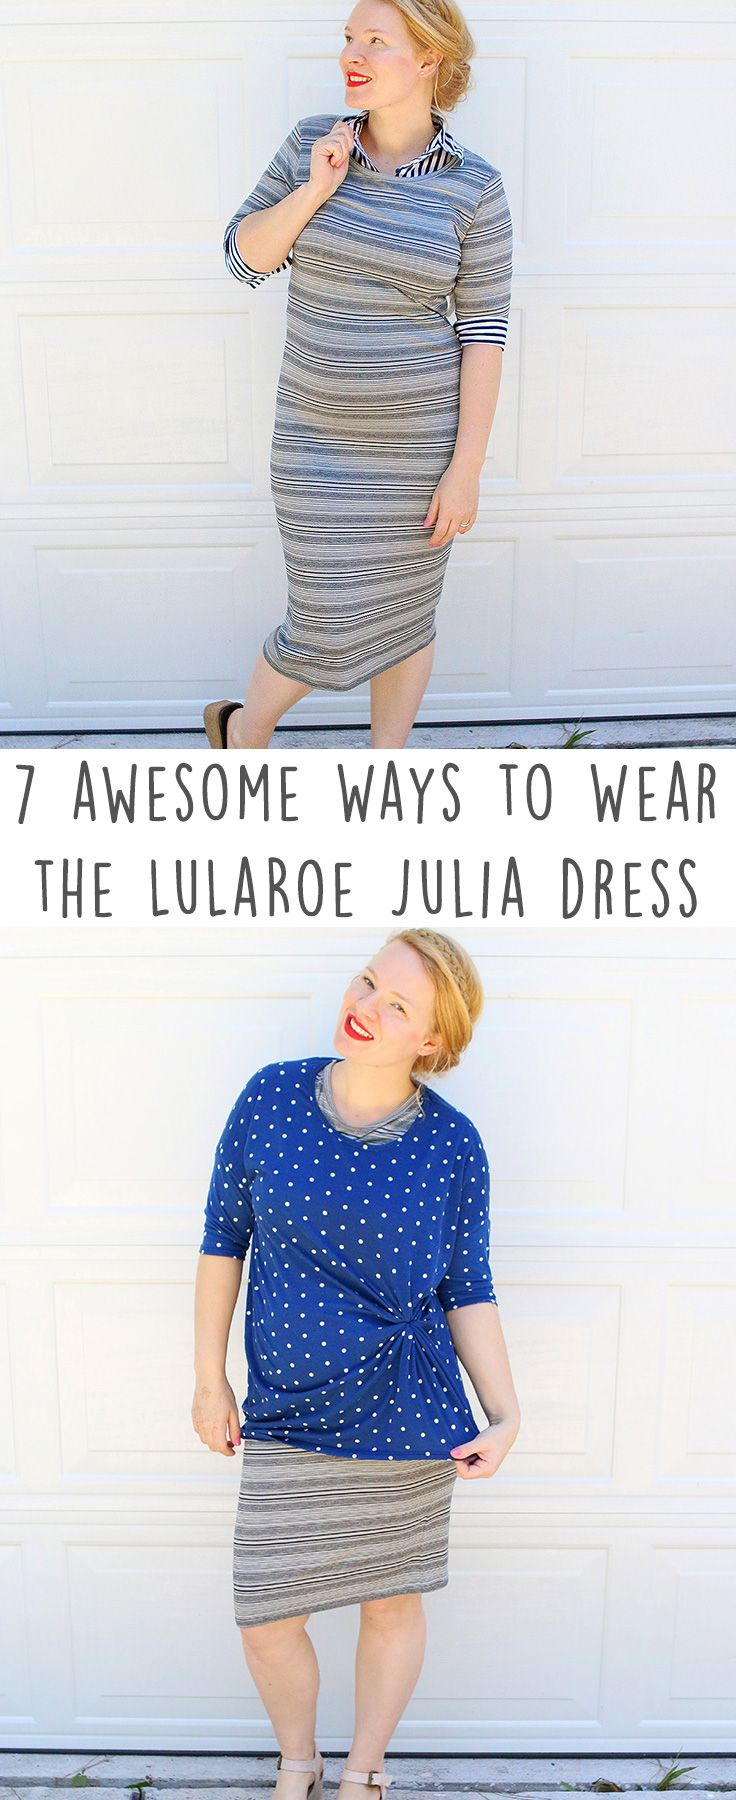 LuLaRoe Julia Dress Styled 7 Ways! This striped LuLaRoe Julia dress has many ways to wear it, let me show you just a few ways from work to casual wear the Julia in a classy way. It's easy to play with patterns when you start with a black & gray dress.